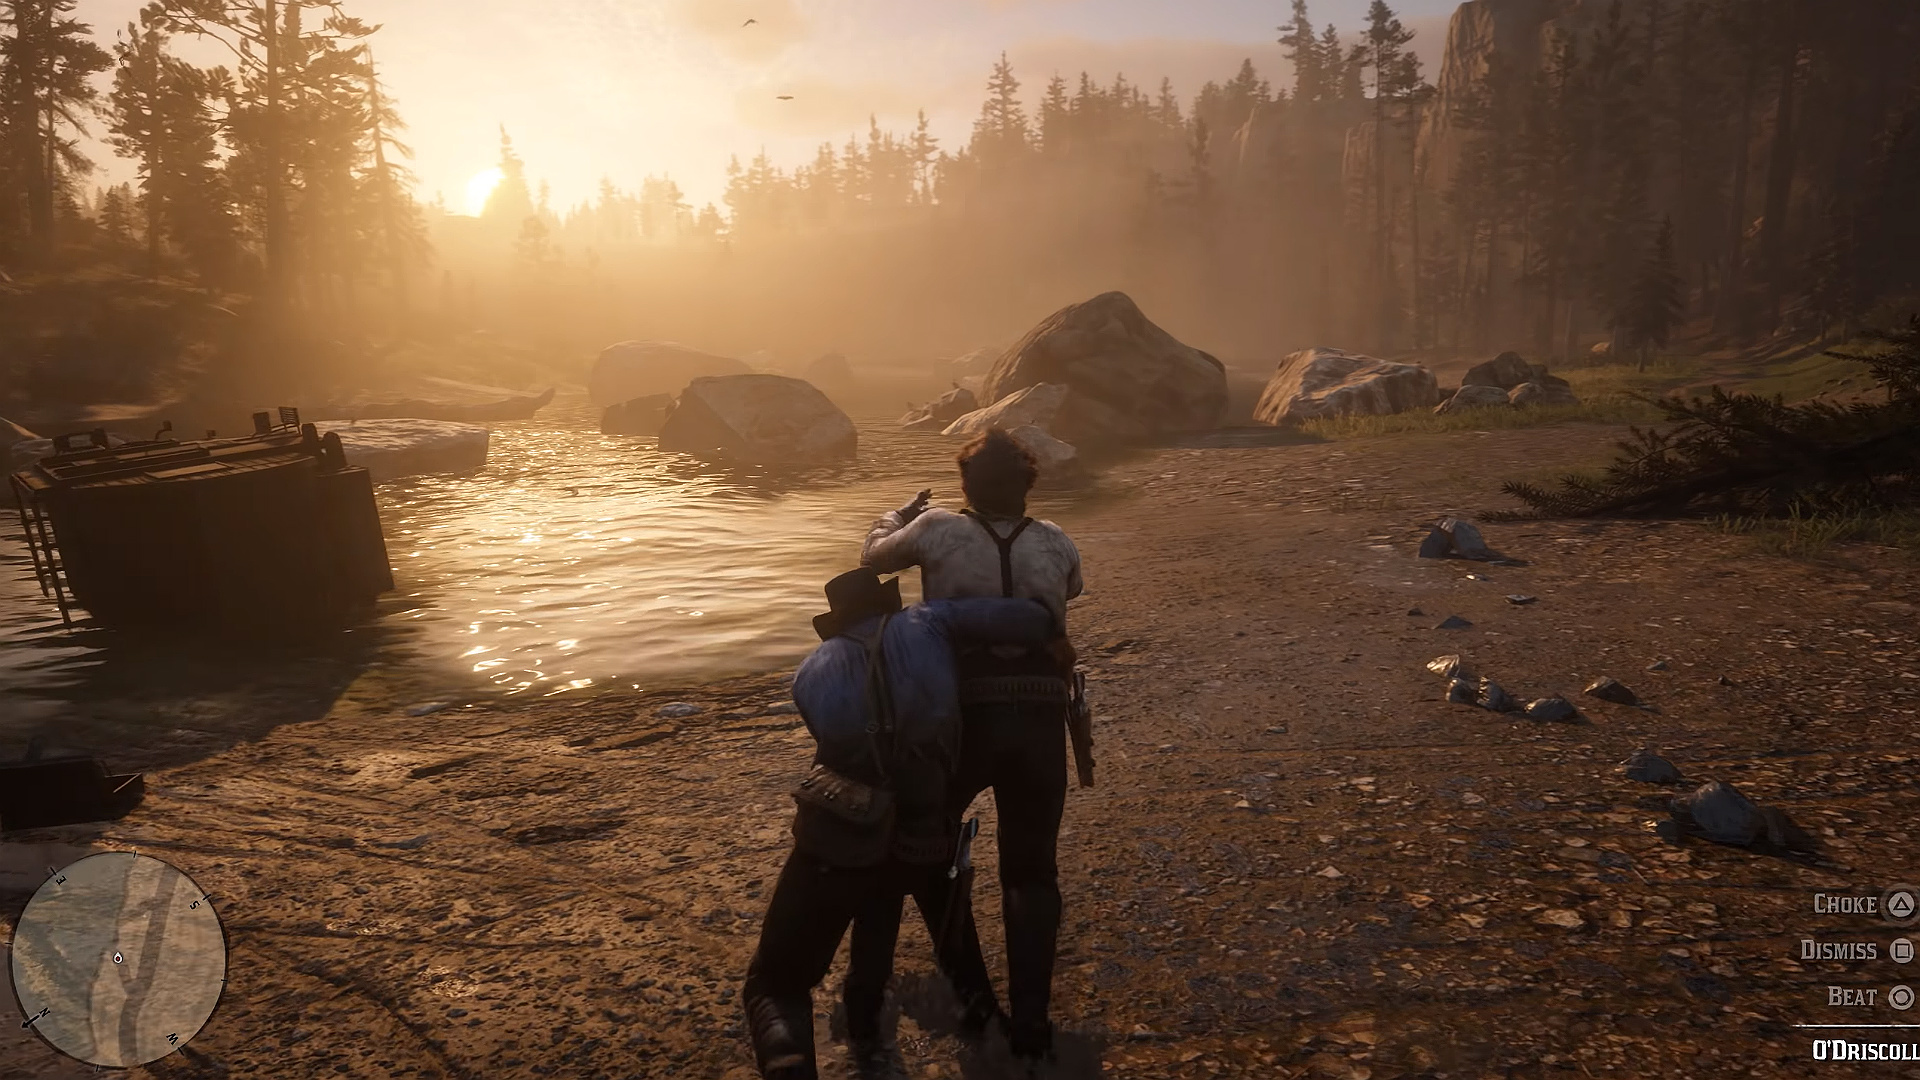 Red Dead Redemption 2 gameplay is here, but there's still no word on a PC release | PCGamesN